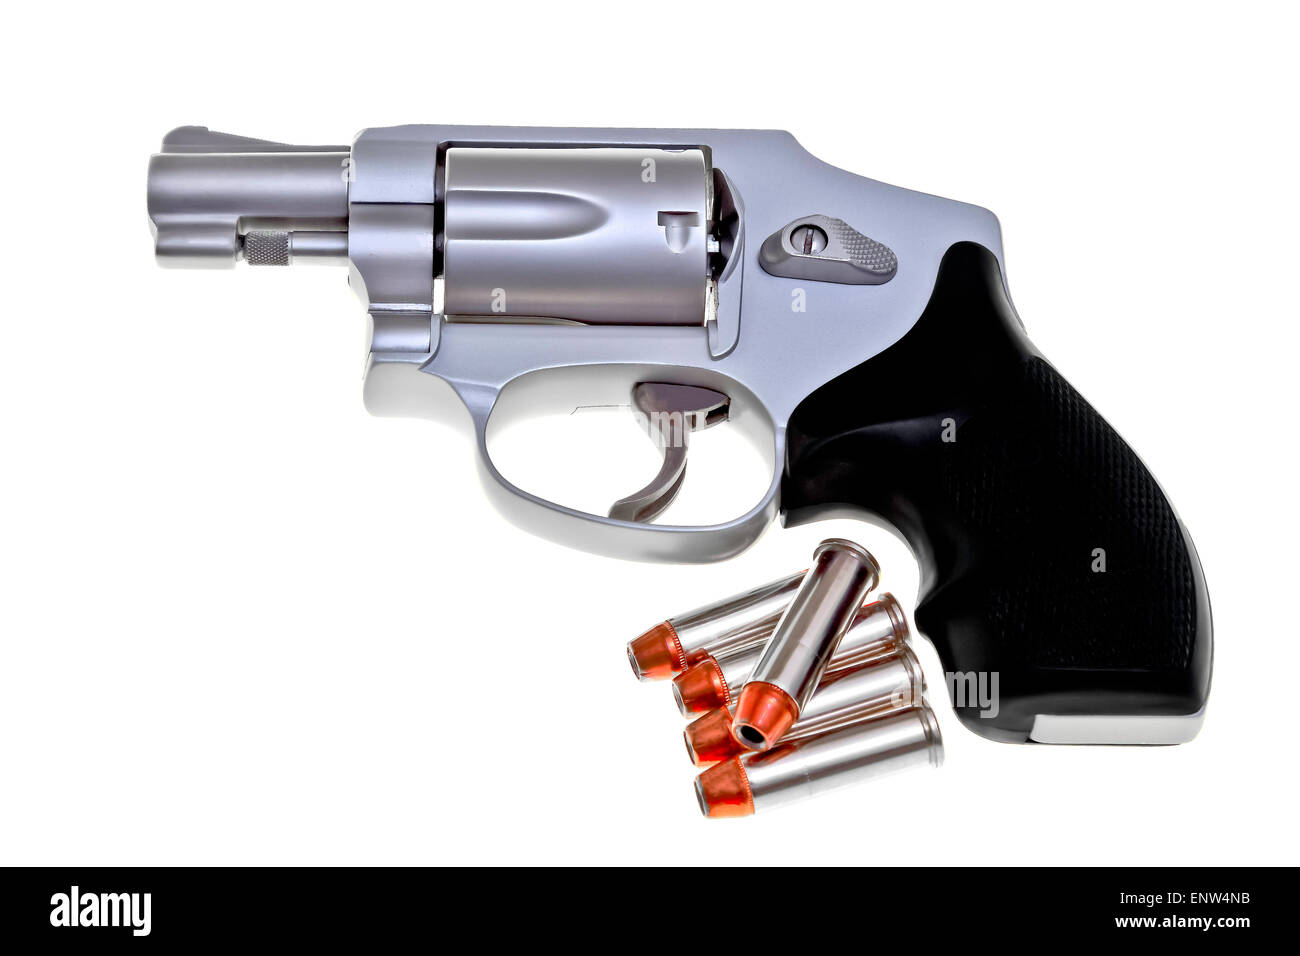 Modern titanium revolver with five .38 cartridges isolated on white background - Stock Image